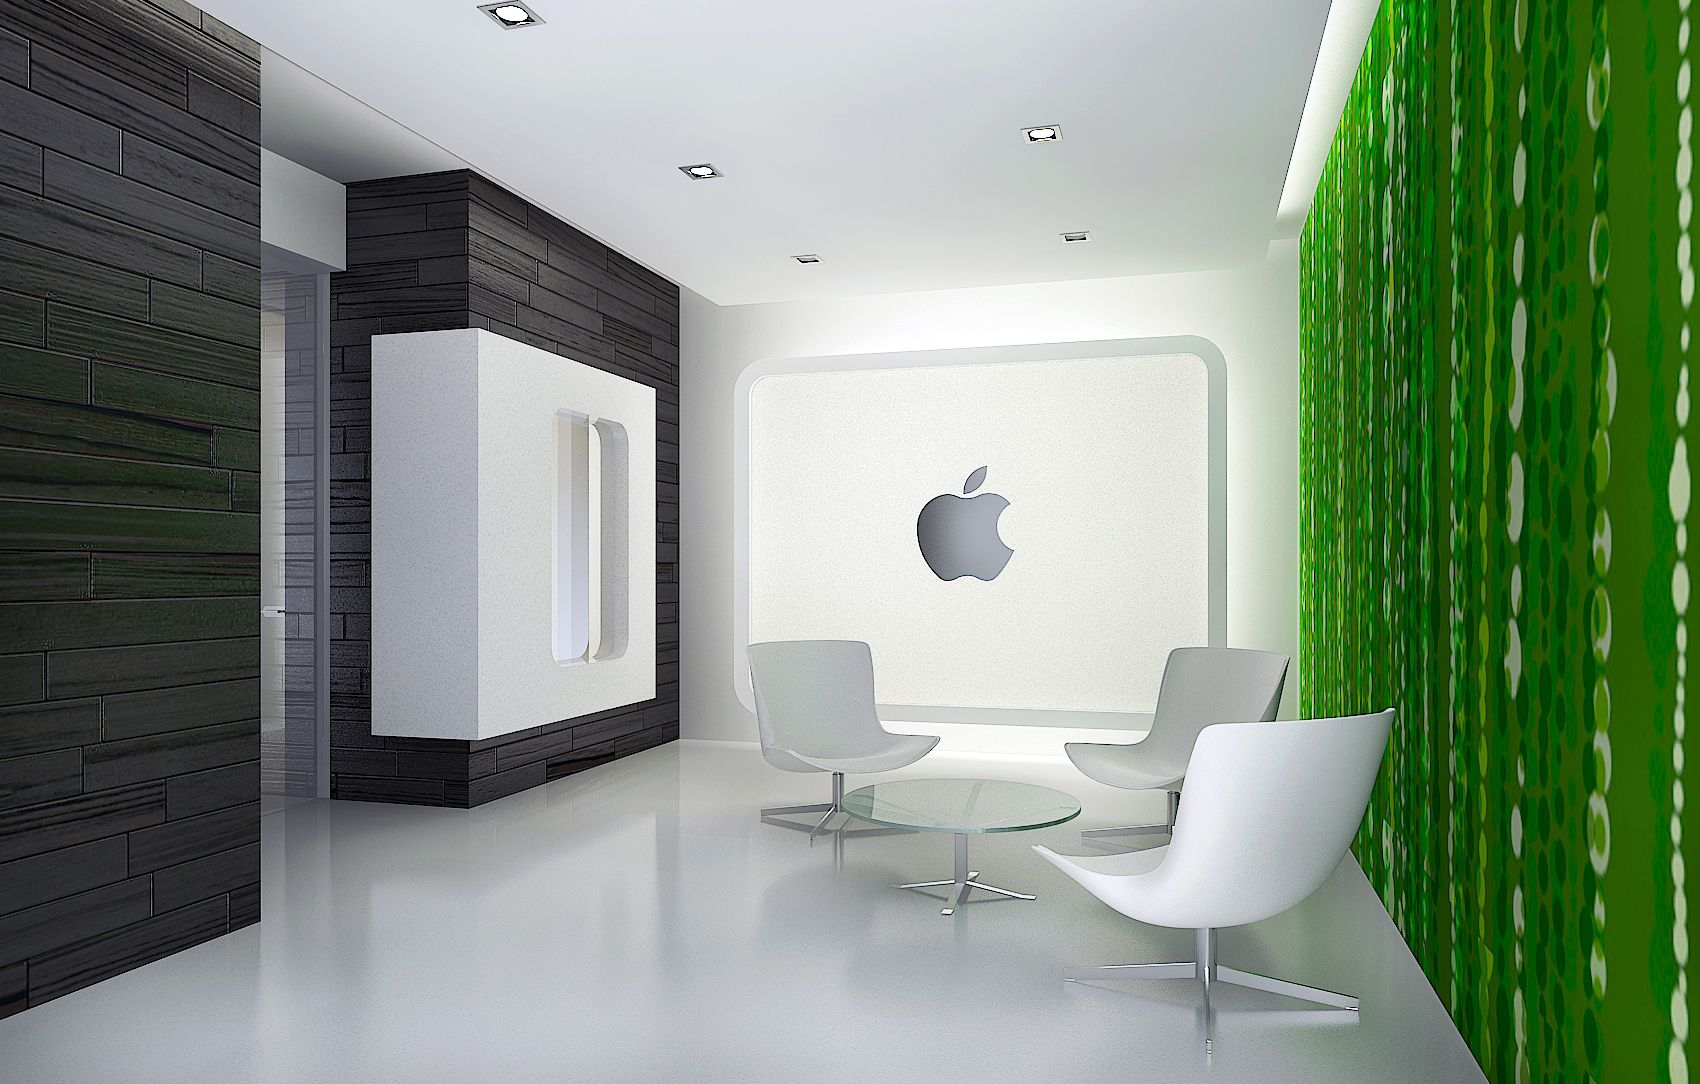 Apple Headquarters Mx By Vta Design With Images Apple